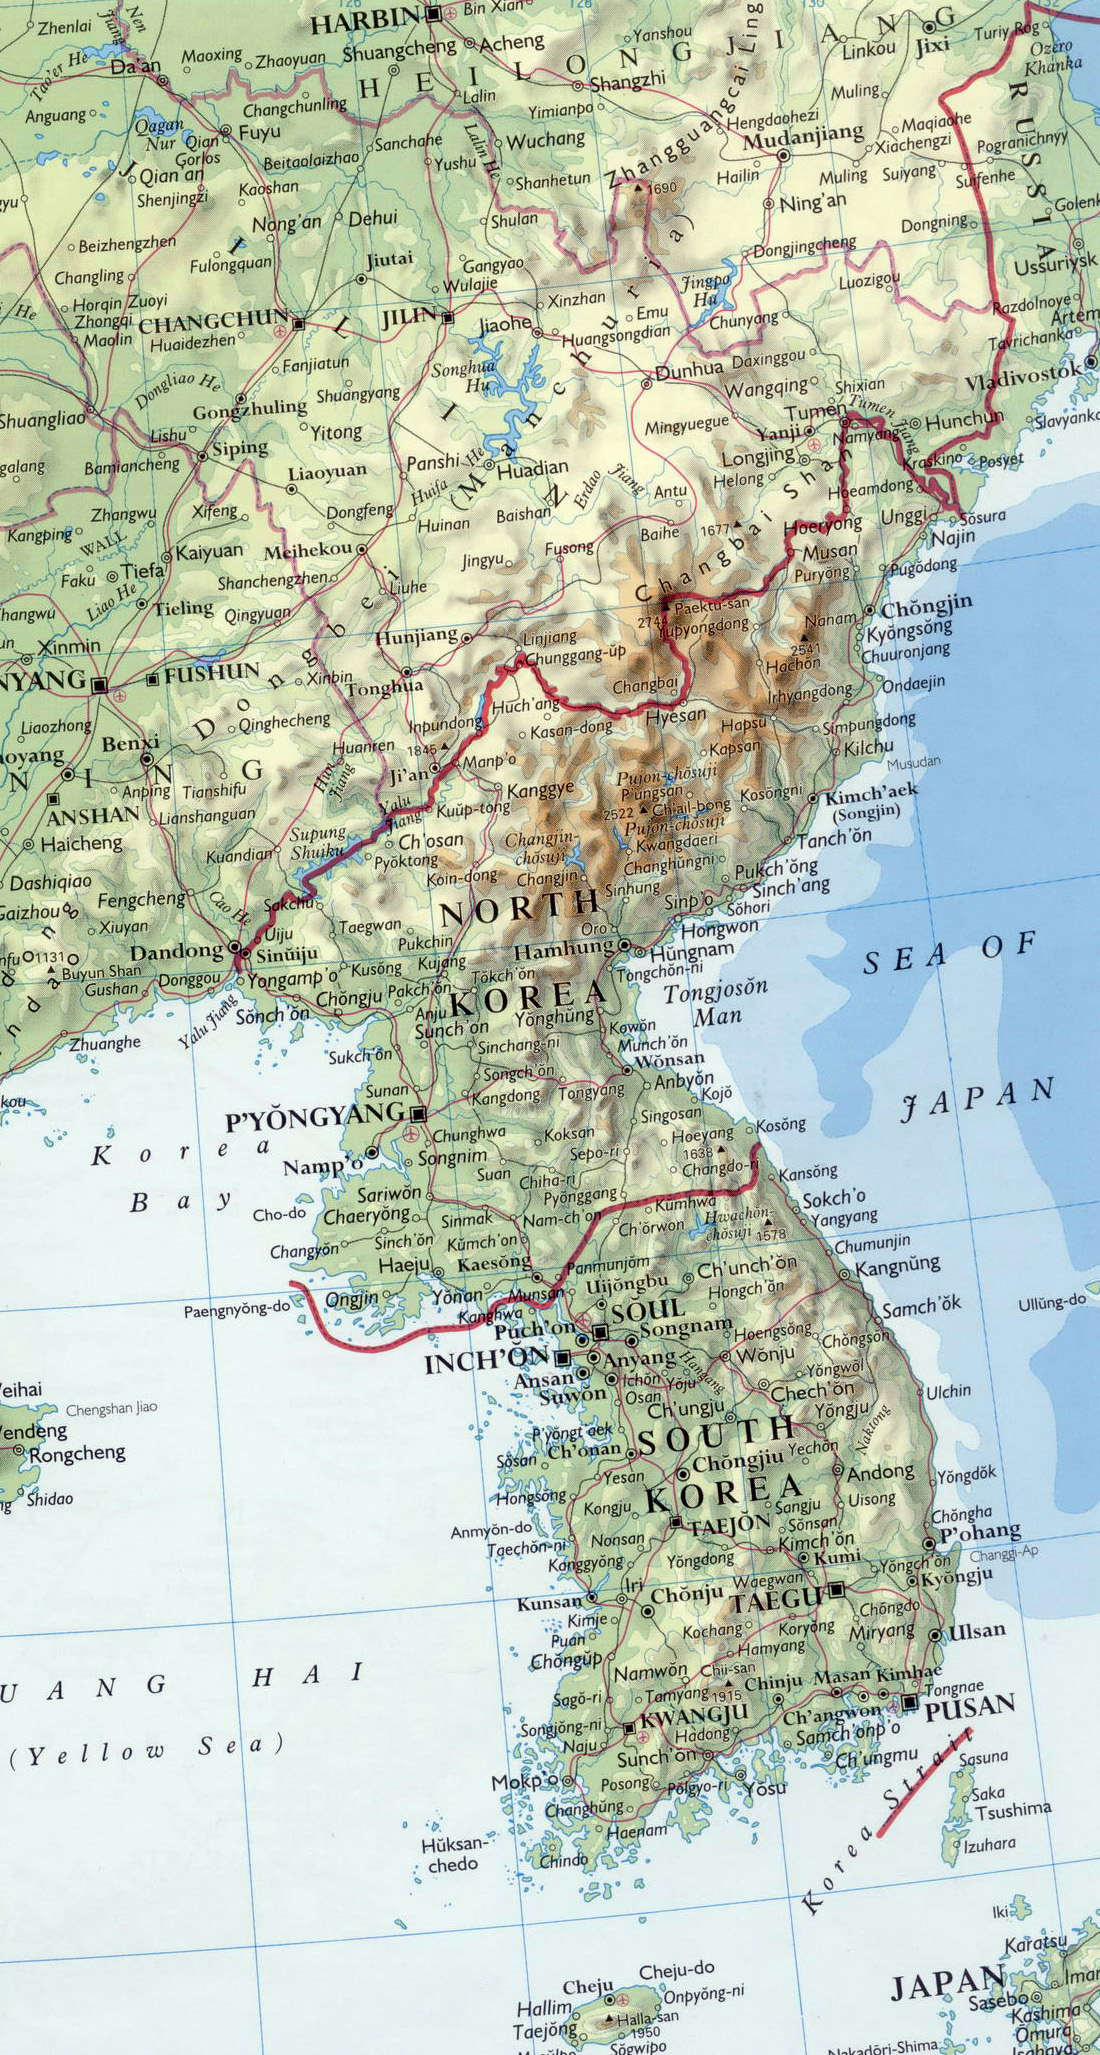 Maps of north korea dprk detailed map of north korea in detailed map of korean peninsula with relief roads and major cities gumiabroncs